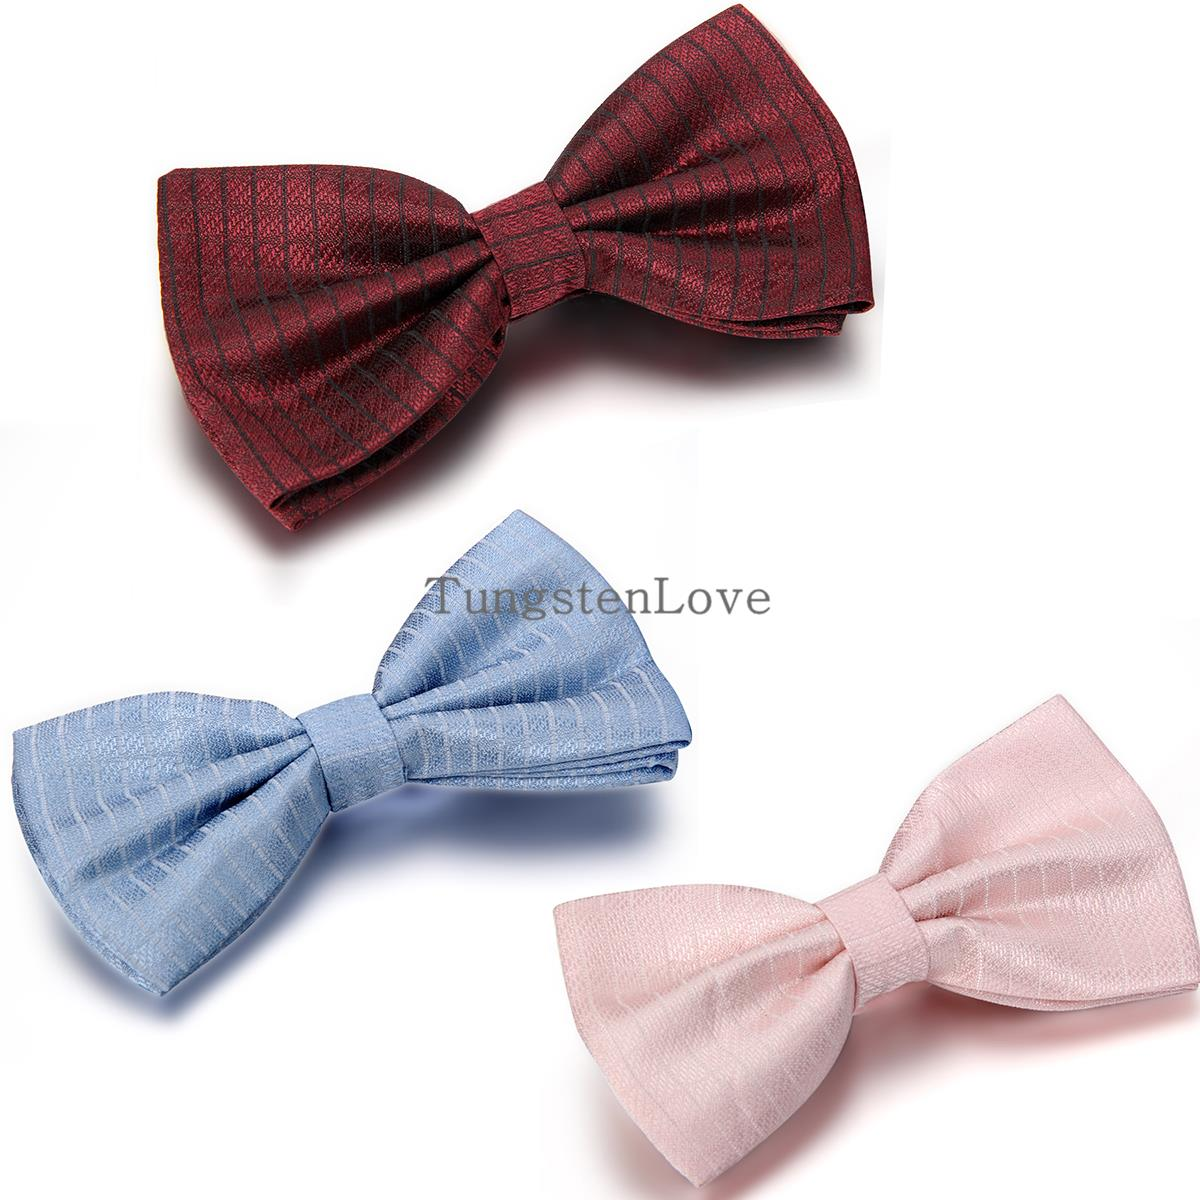 2015 Gentleman Wedding Party Tuxedo Marriage Butterfly Cravat Men Solid Bow Tie Adjustable Business Bowties For Gifts 3 Colors(China (Mainland))